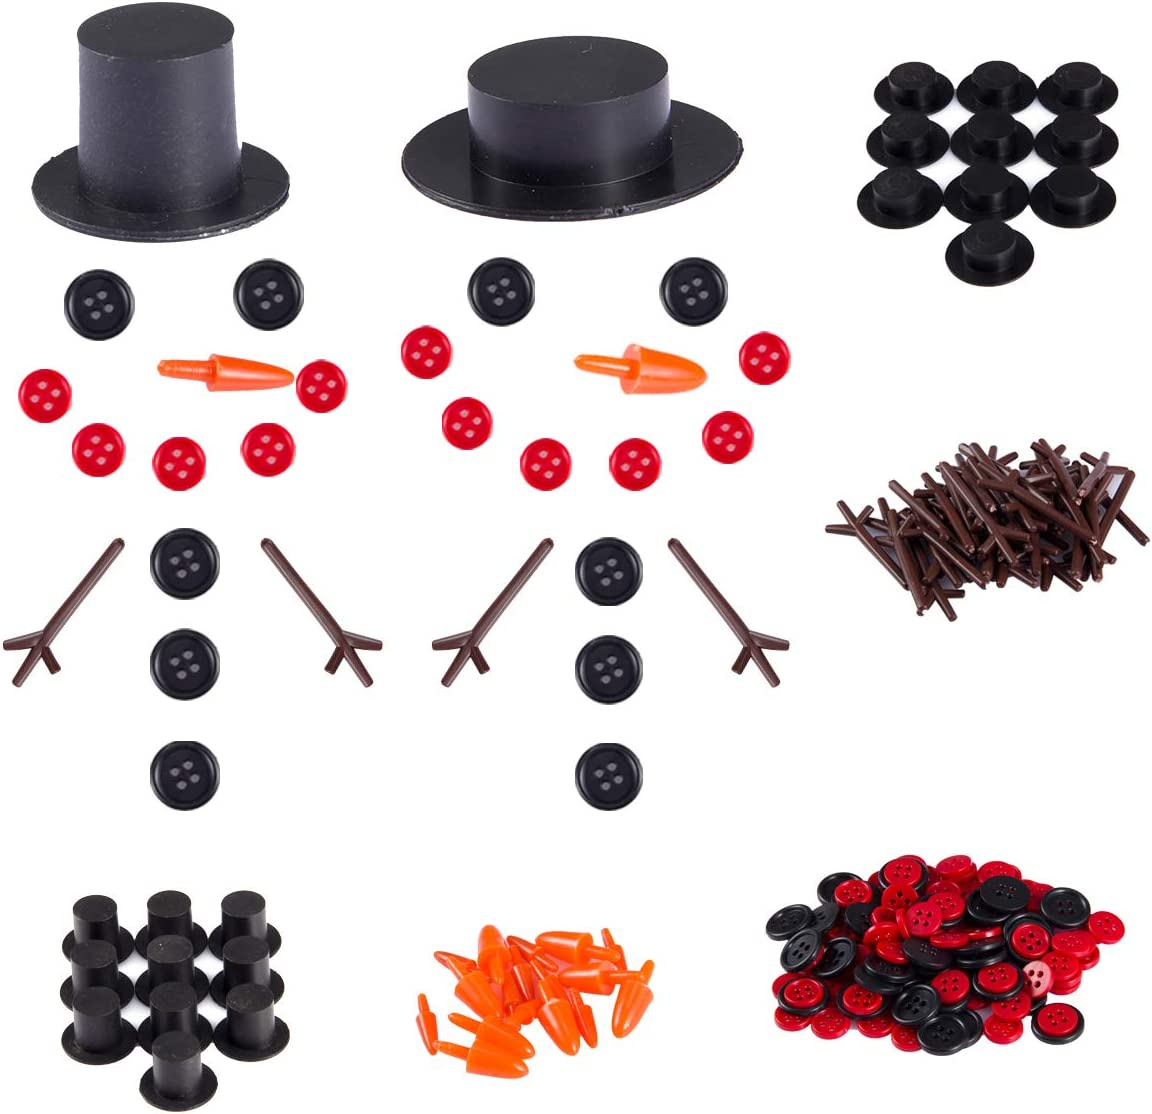 20 Sets Buttons for Snowman Crafts Opening Long Beach Mall large release sale DIY- Noses Butto 20pcs Carrot